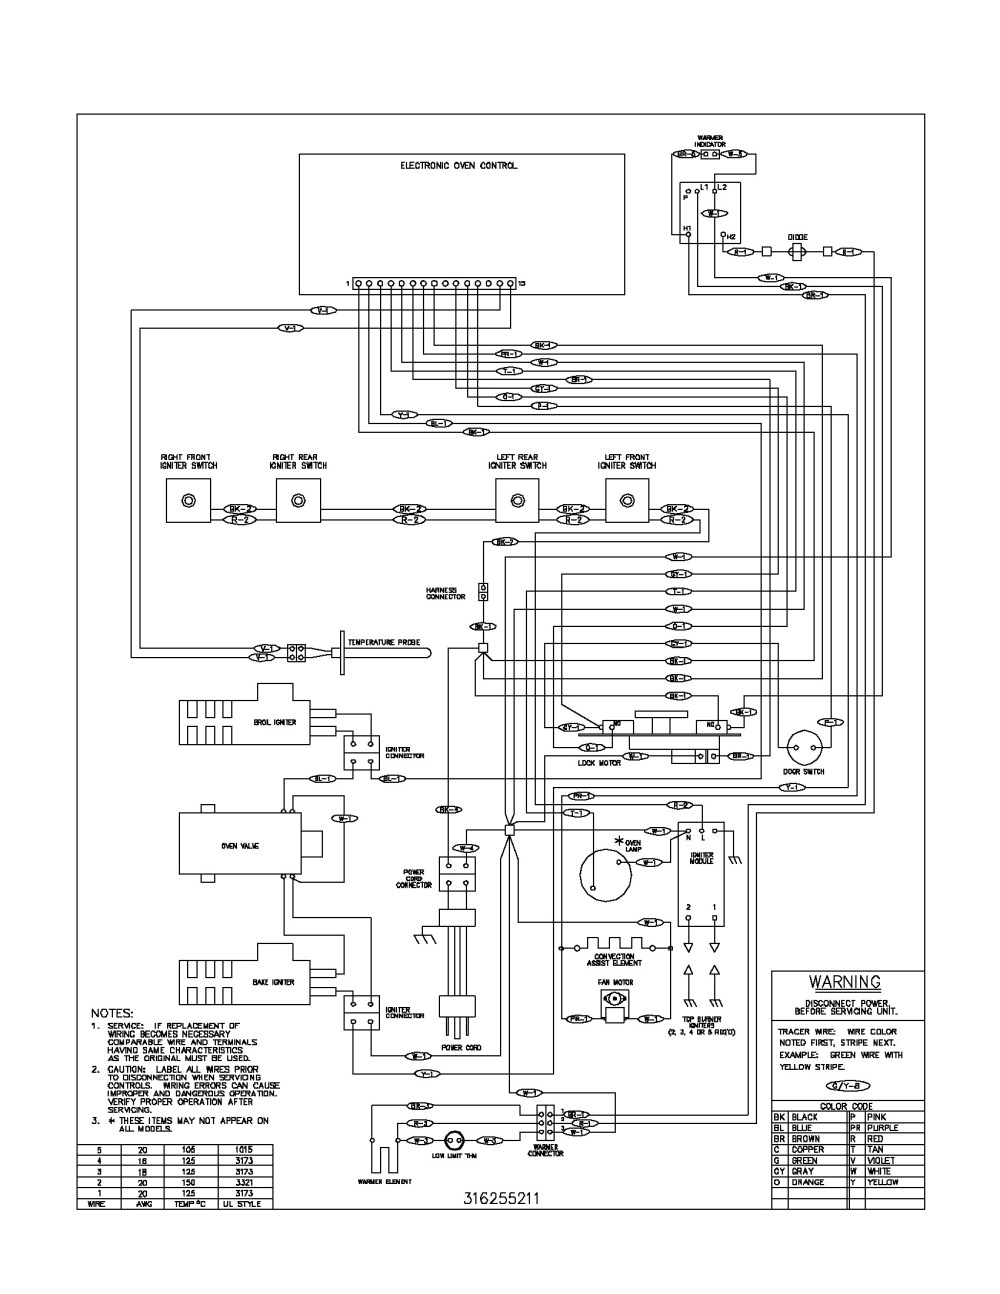 medium resolution of frigidaire electric range wiring diagram wiring diagram for electric stove new frigidaire fef366ccb electric range